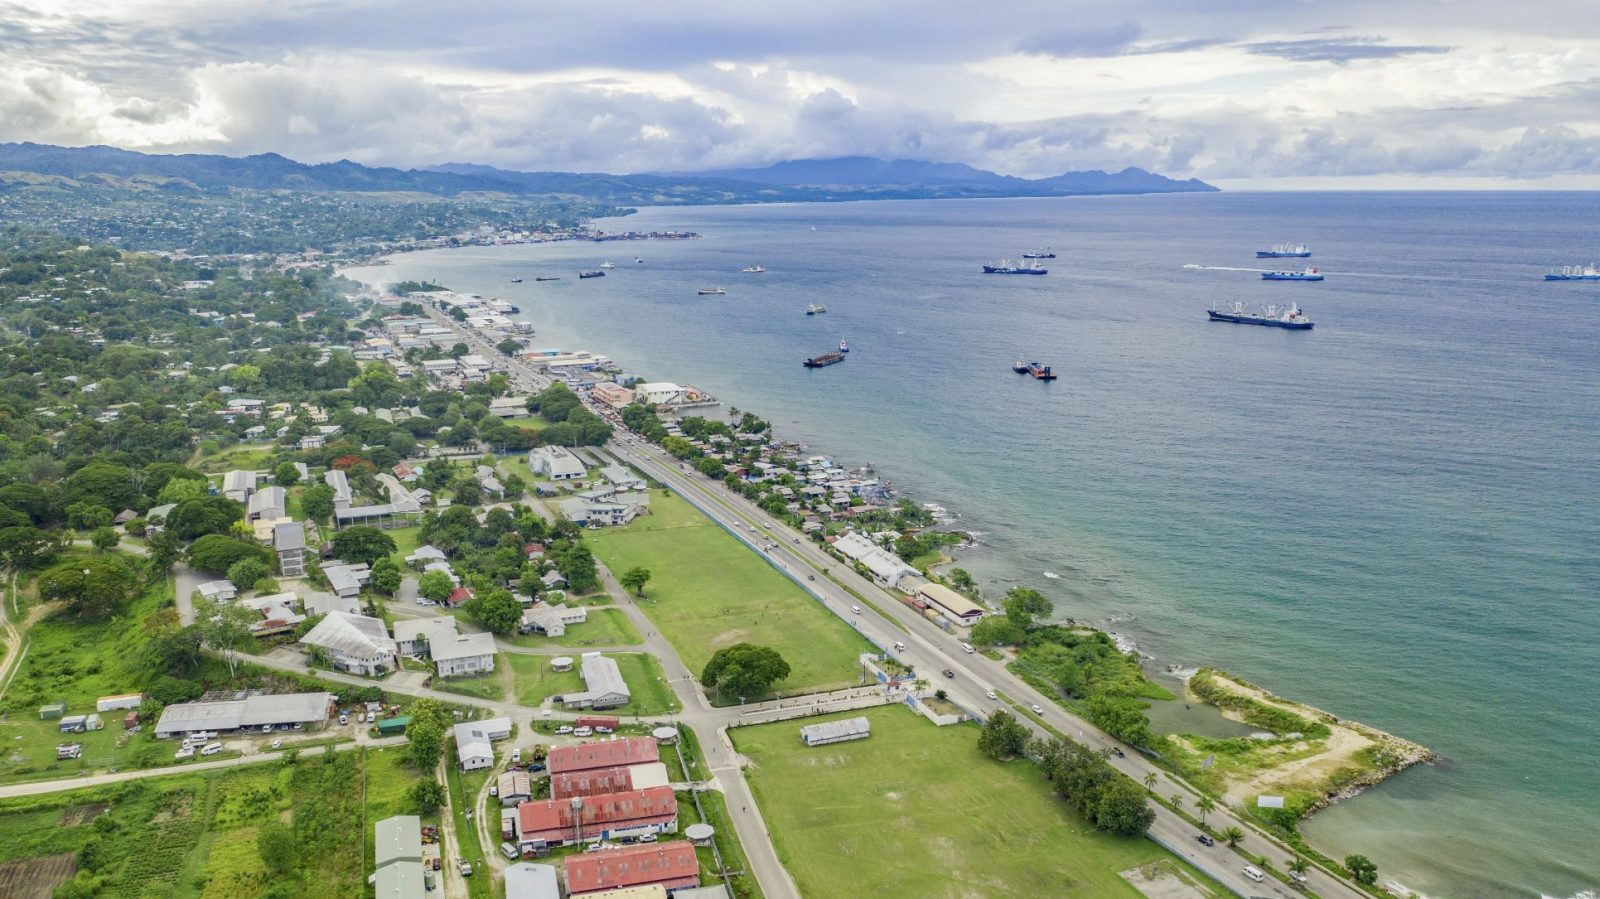 Photo of Honiara Harbor. USTDA is funding technical assistance to modernize the Solomon Islands' banking infrastructure.